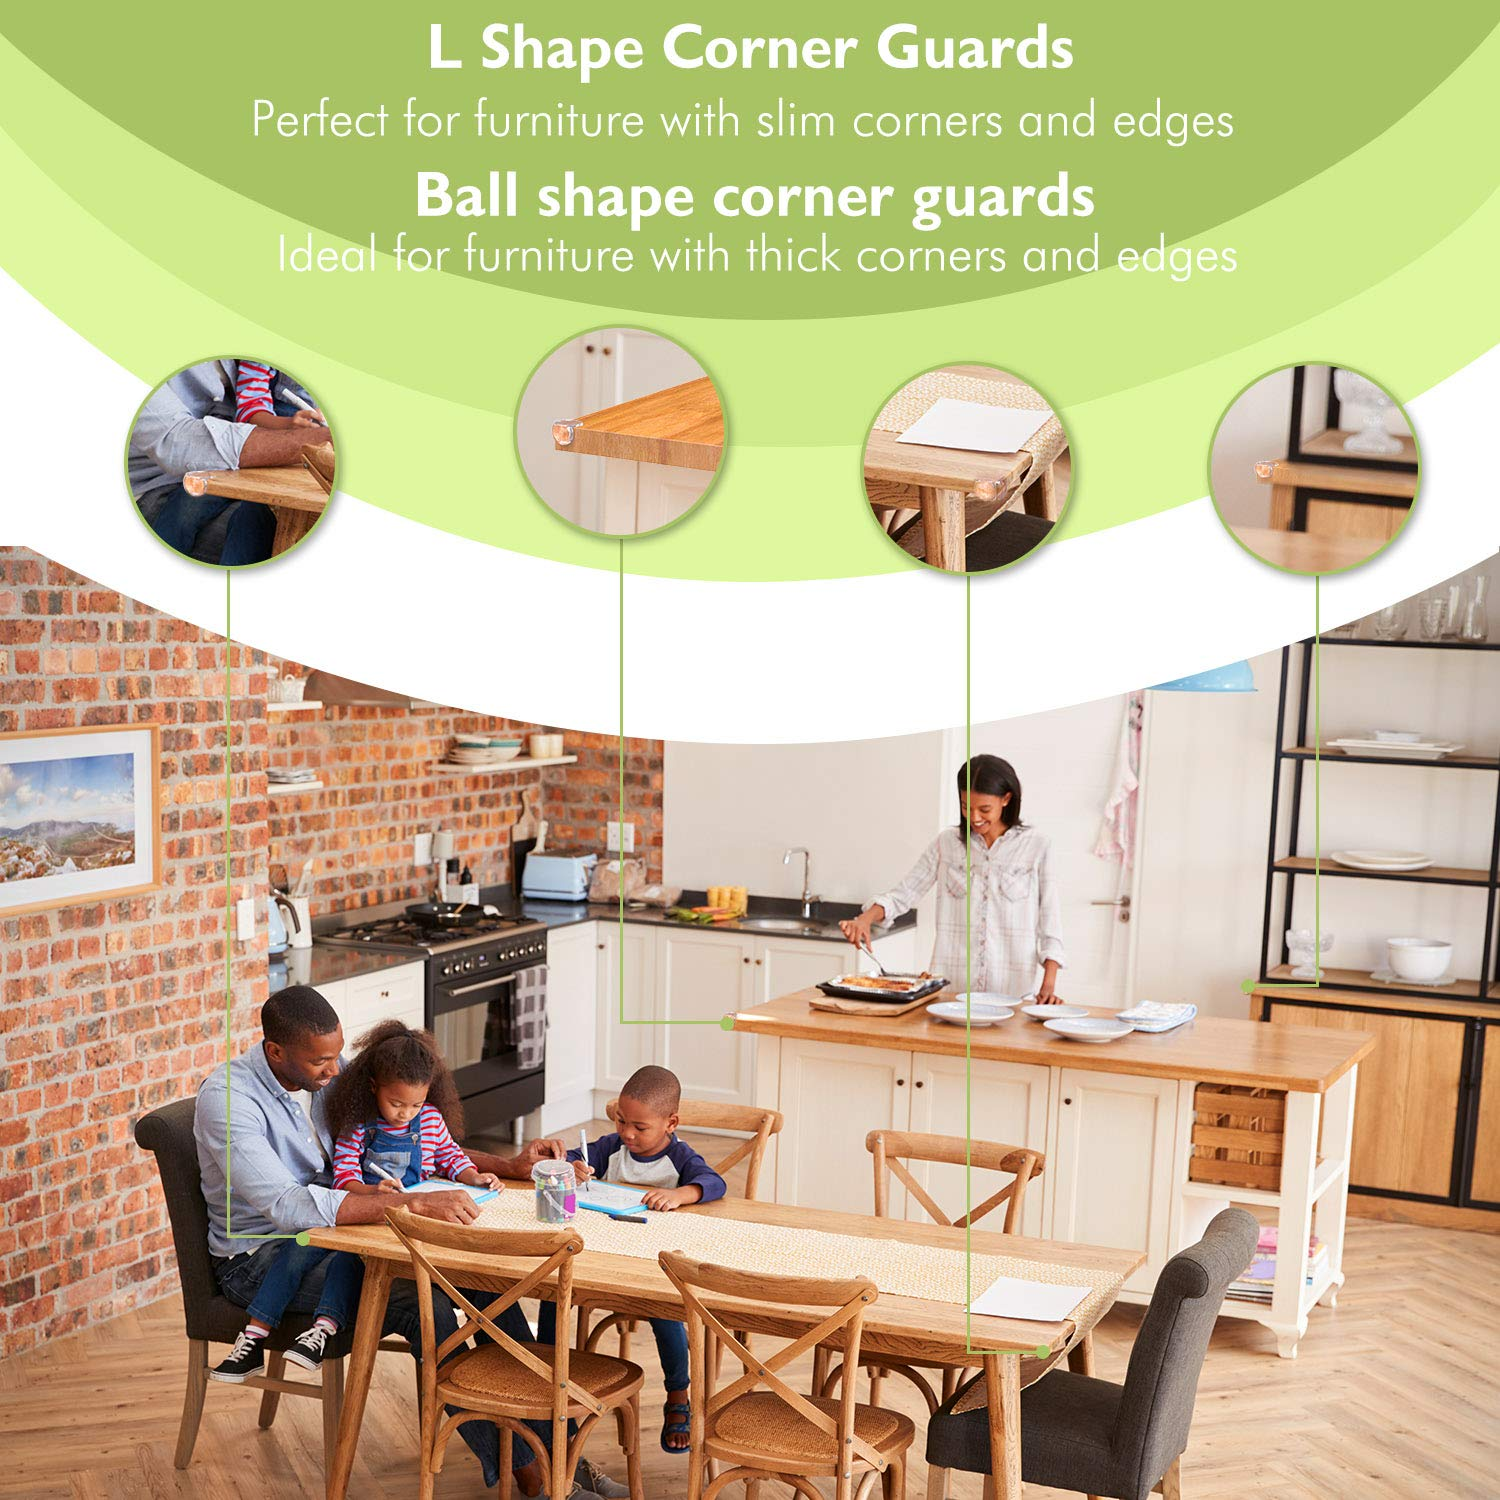 Cabinets and Sharp Edges 12pcs L Shaped /& 12pcs Ball Shaped Included 24 Packs Safety and Corner Guards Set CG-01-NEW Dr.meter Baby Proofing Edge Guards with 3M Adhesive for Furniture